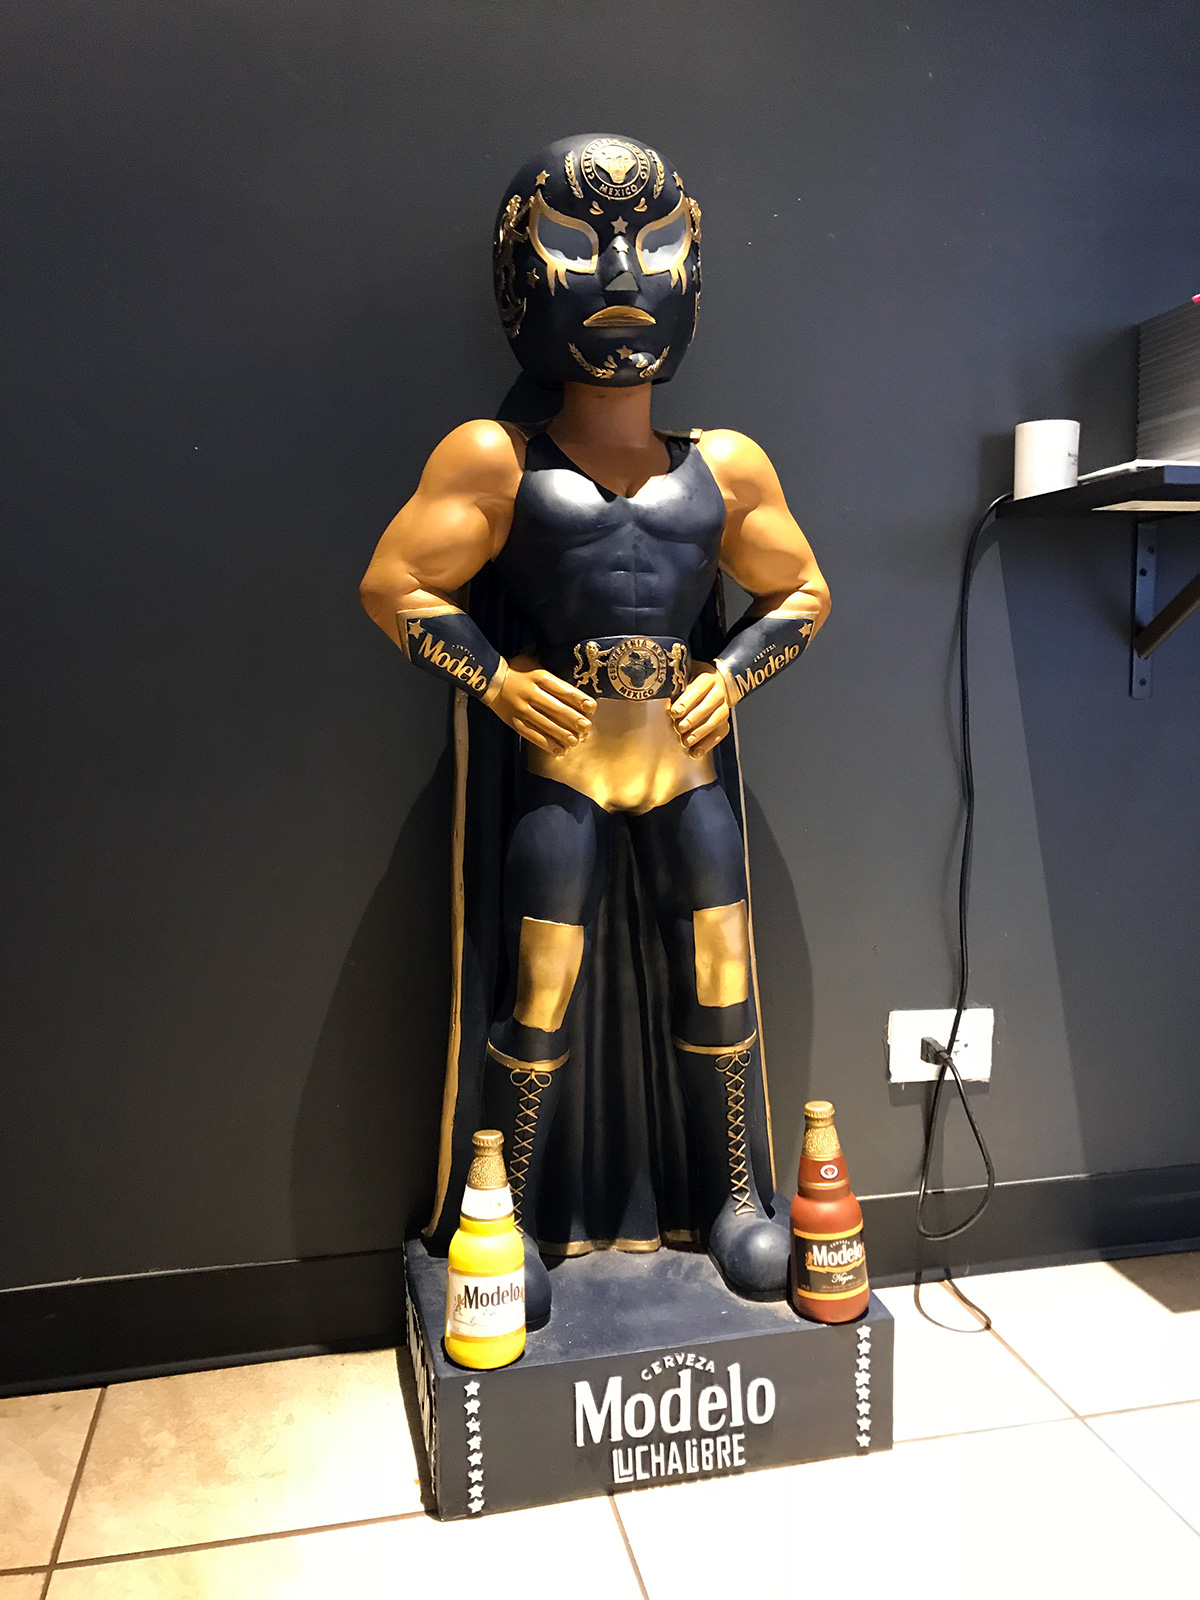 Modelo Luchador by Jets Like Taxis